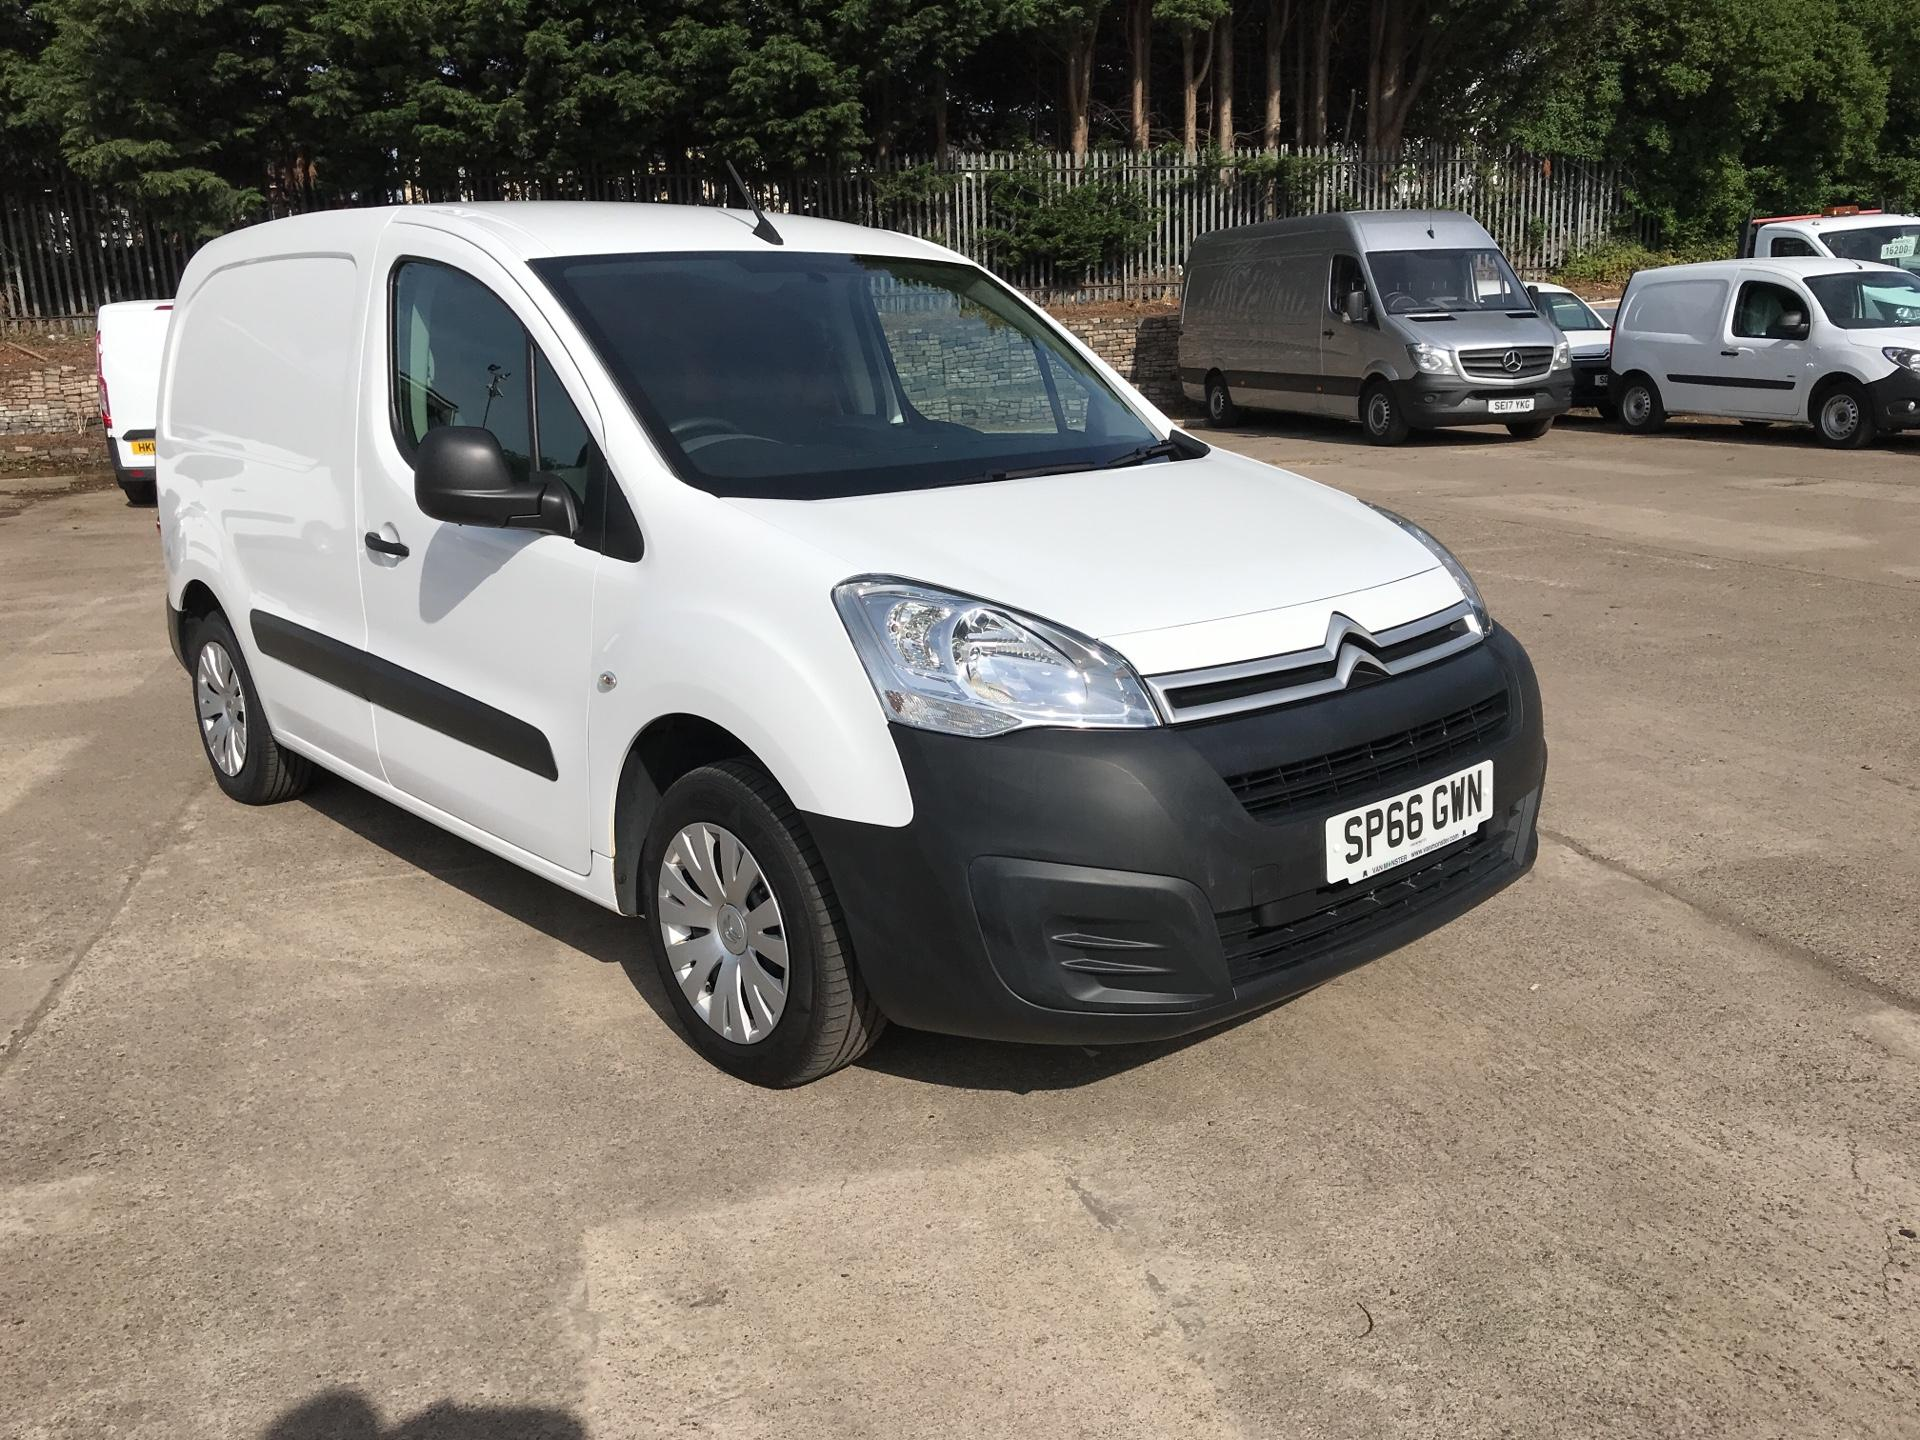 2016 Citroen Berlingo L1 DIESEL 1.6 HDI 625KG ENTERPRISE 75PS EURO 4/5 (SP66GWN)